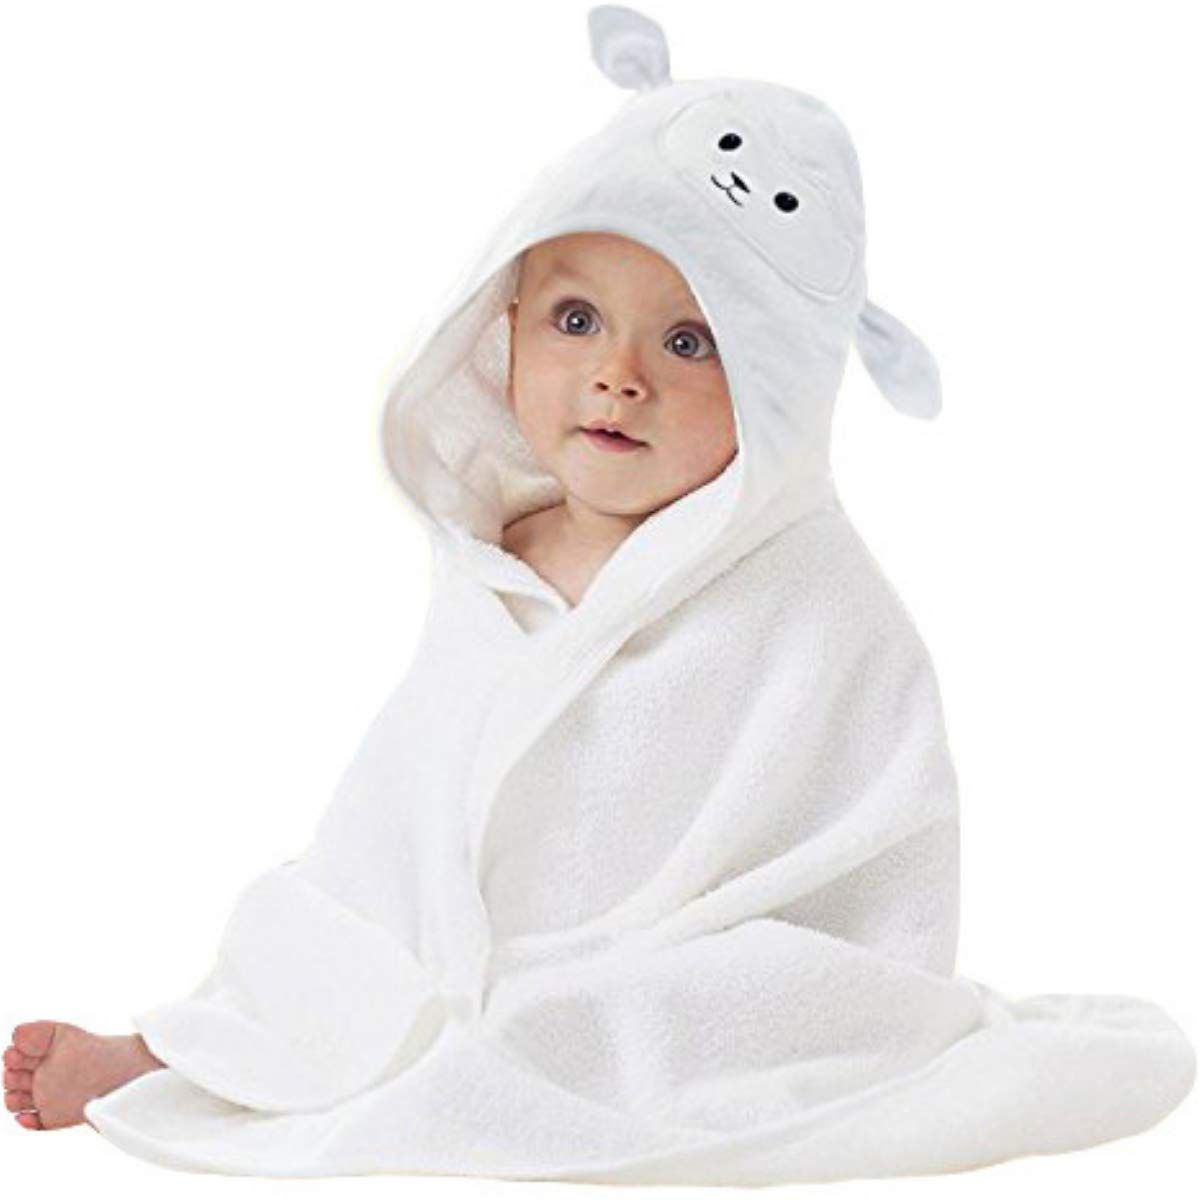 Baby Animal Face Hooded Towel In 2020 With Images Hooded Baby